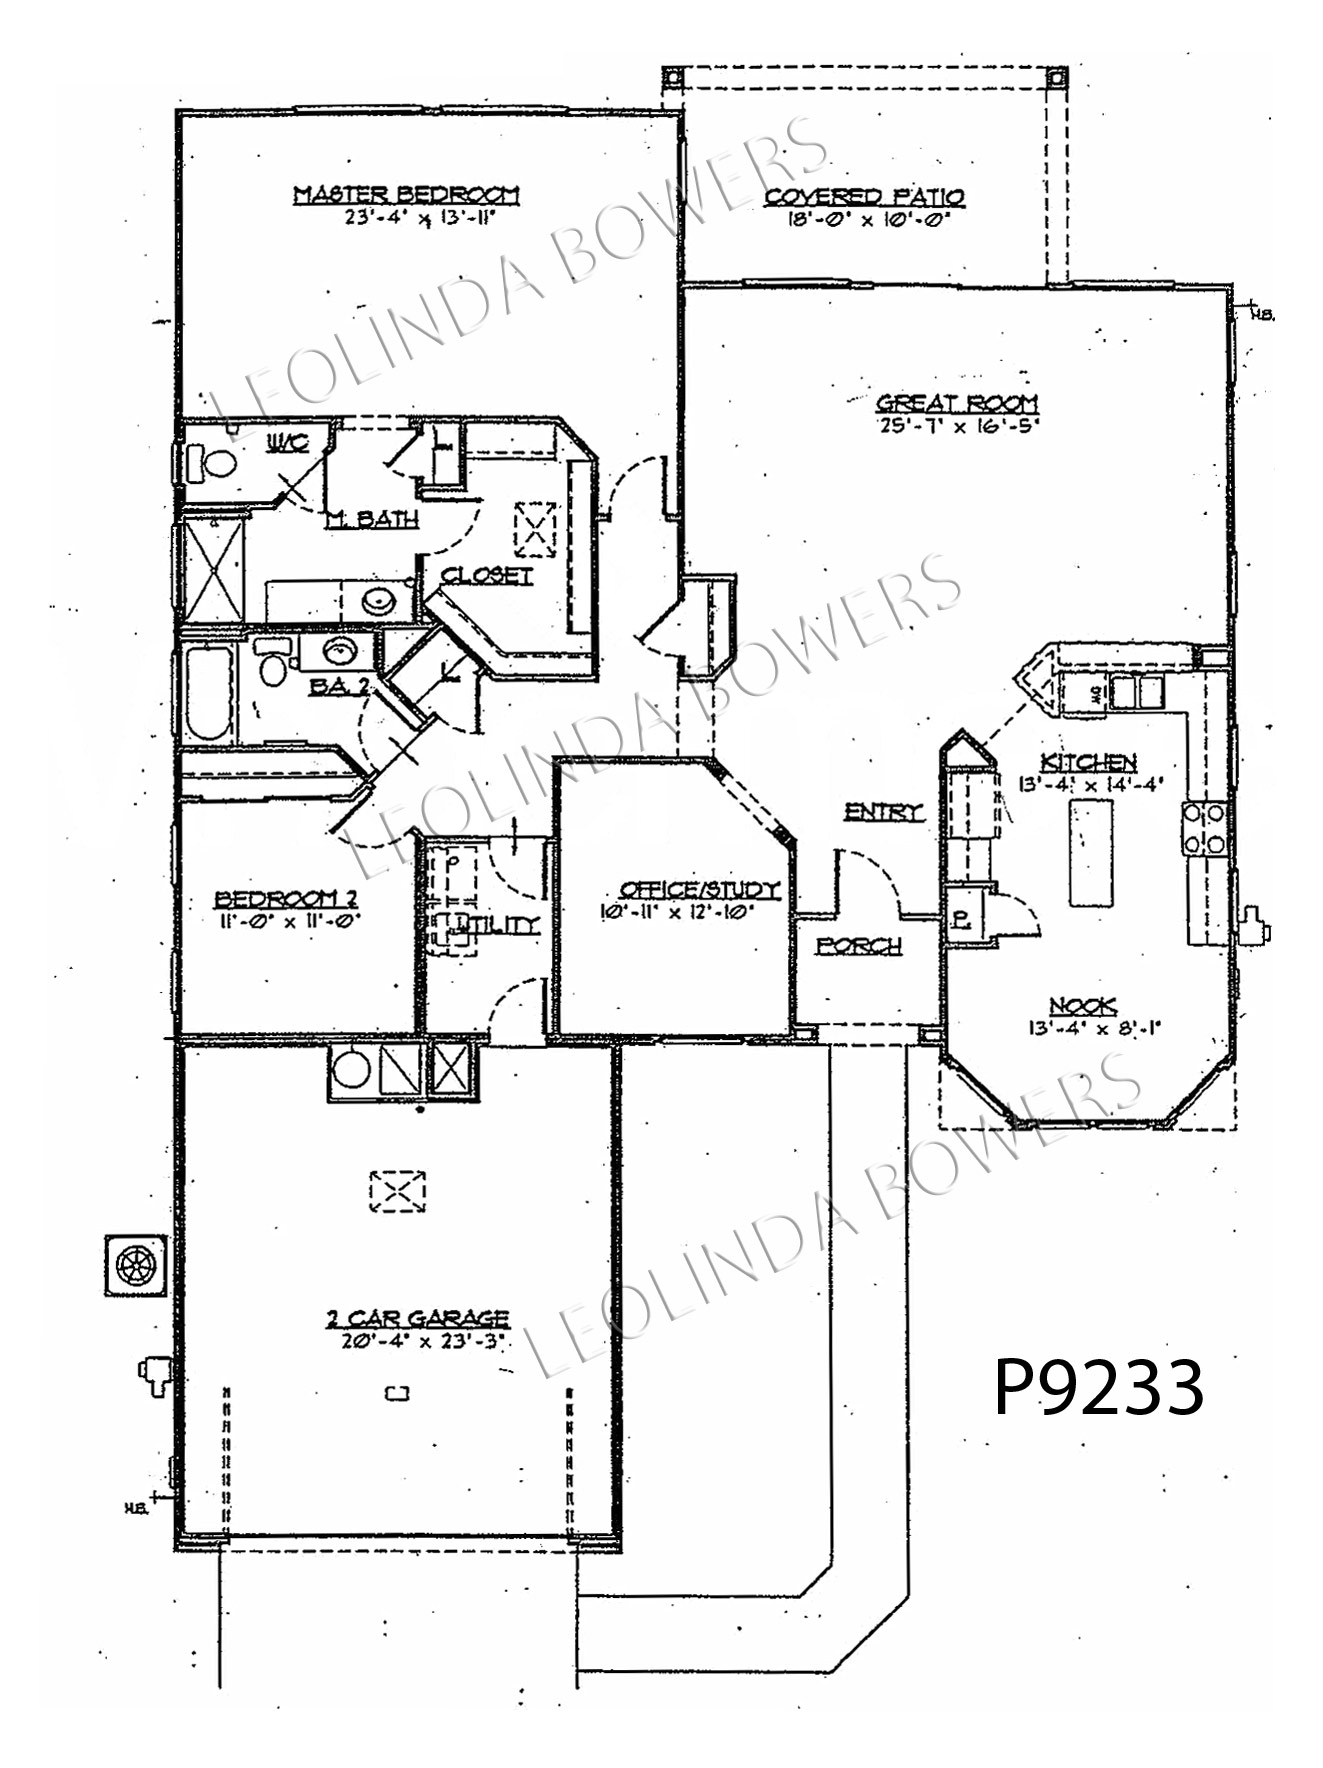 Find Sun City Grand Sierra Floor Plans Leolinda Bowers